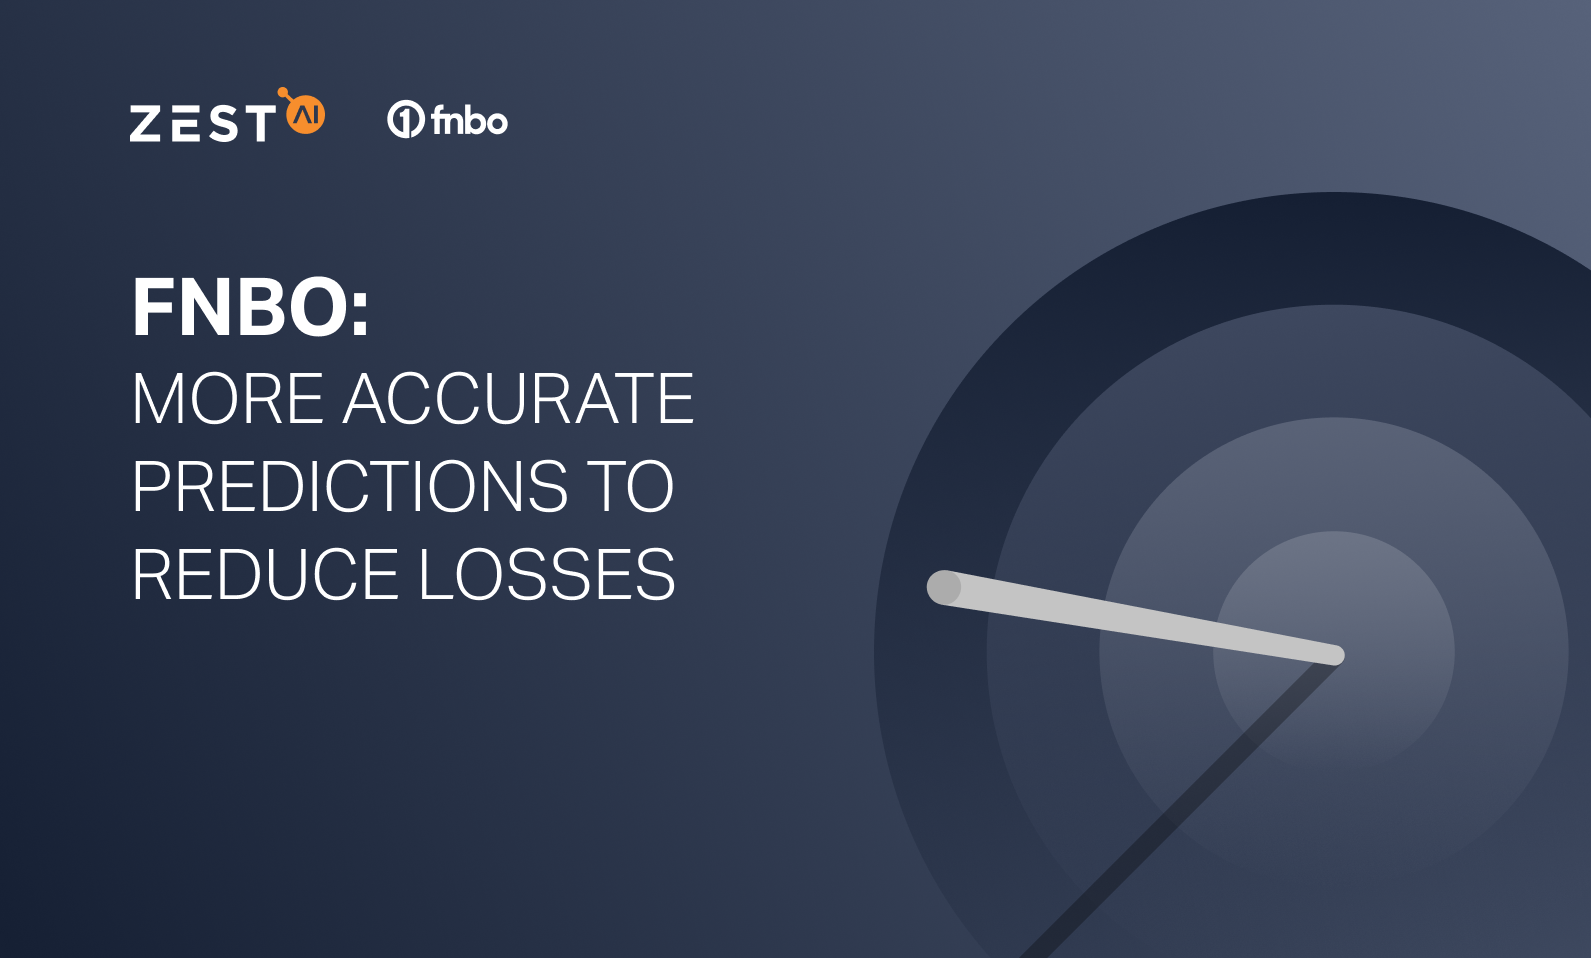 FNBO Bank reduces credit losses with accurate predictions